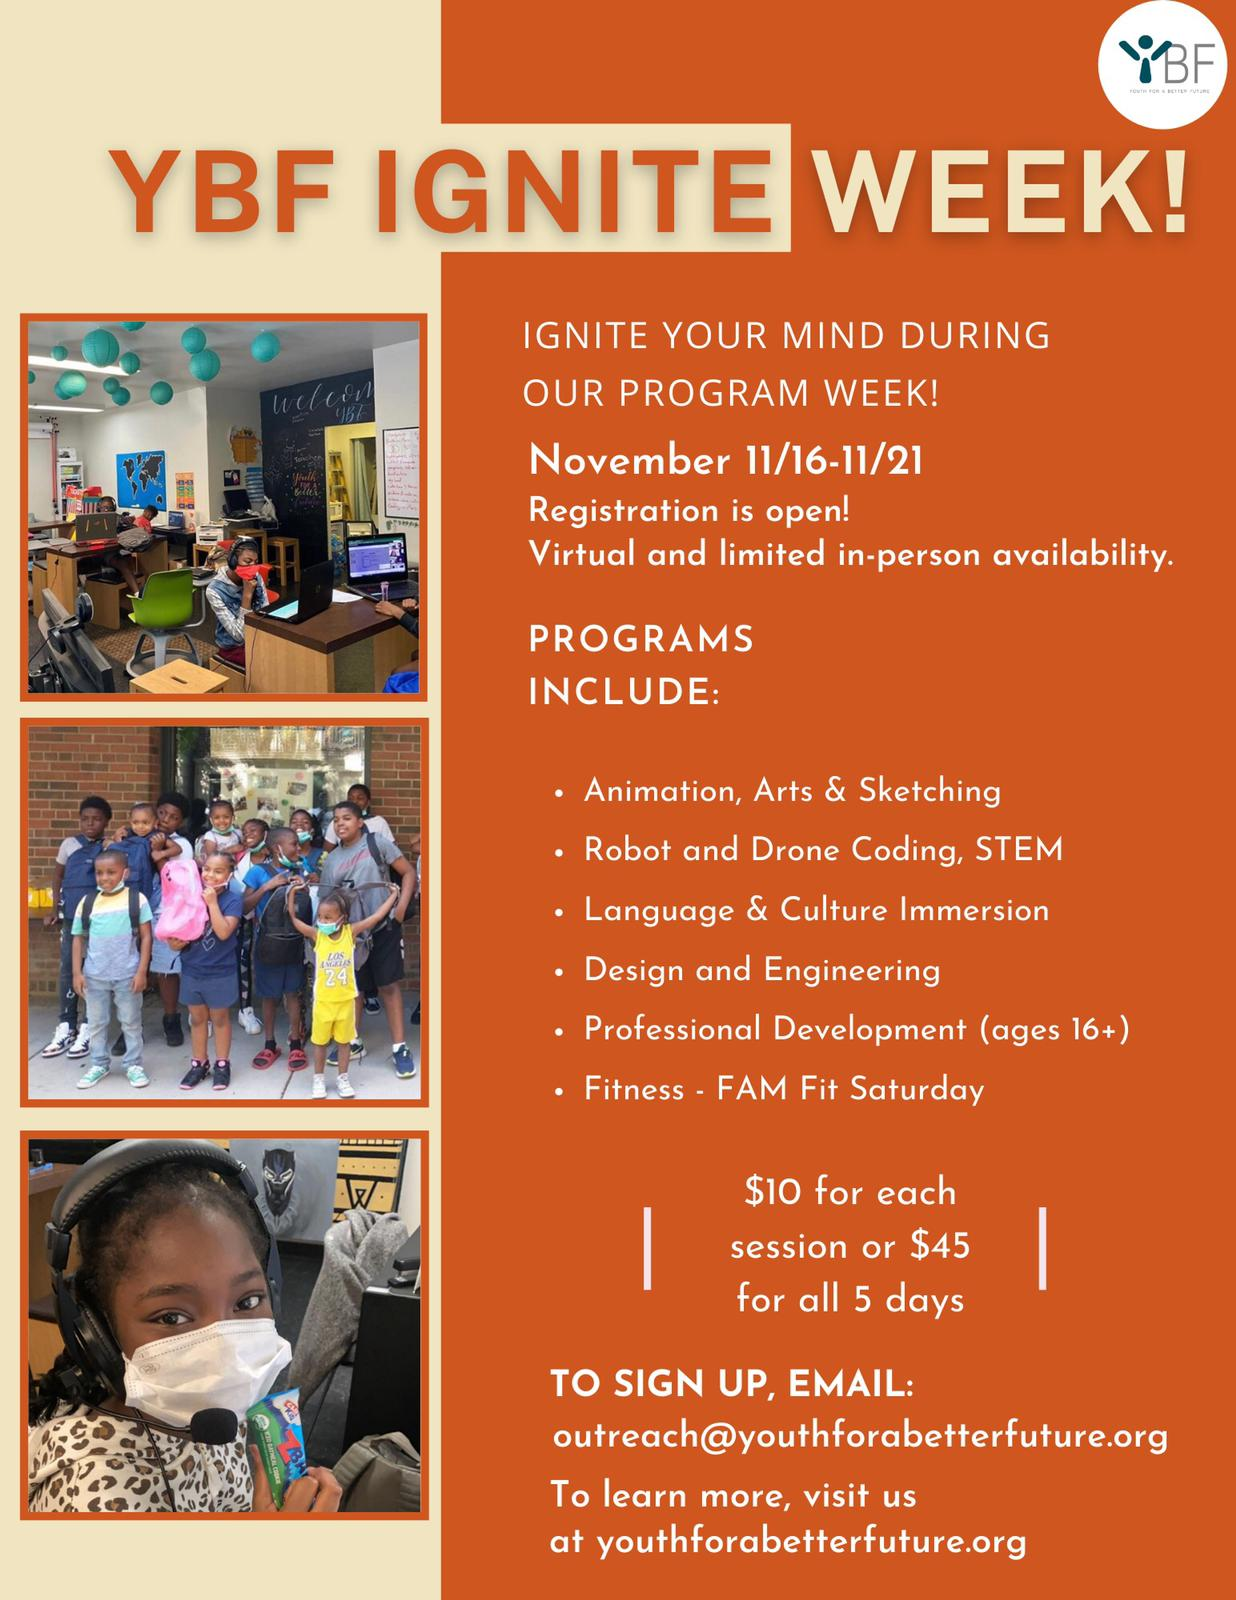 YBF Ignite Week